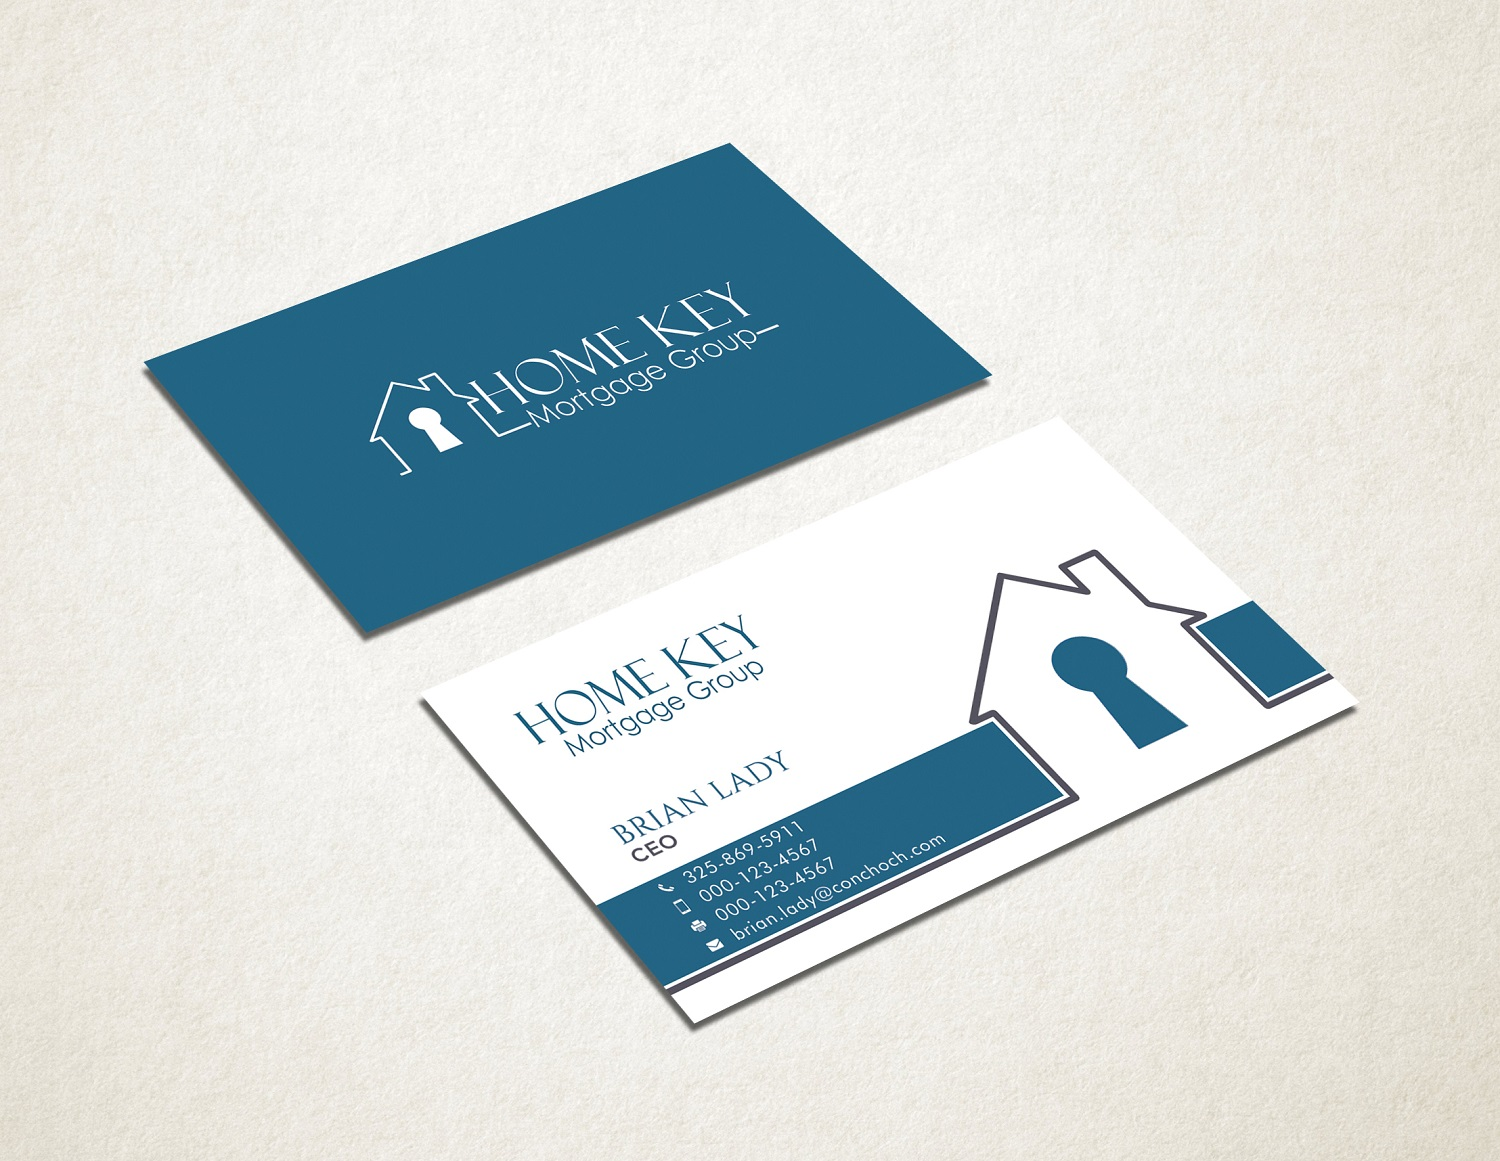 It company business card design for home key mortgage group by business card design by graphic flame for home key mortgage group design 15242910 colourmoves